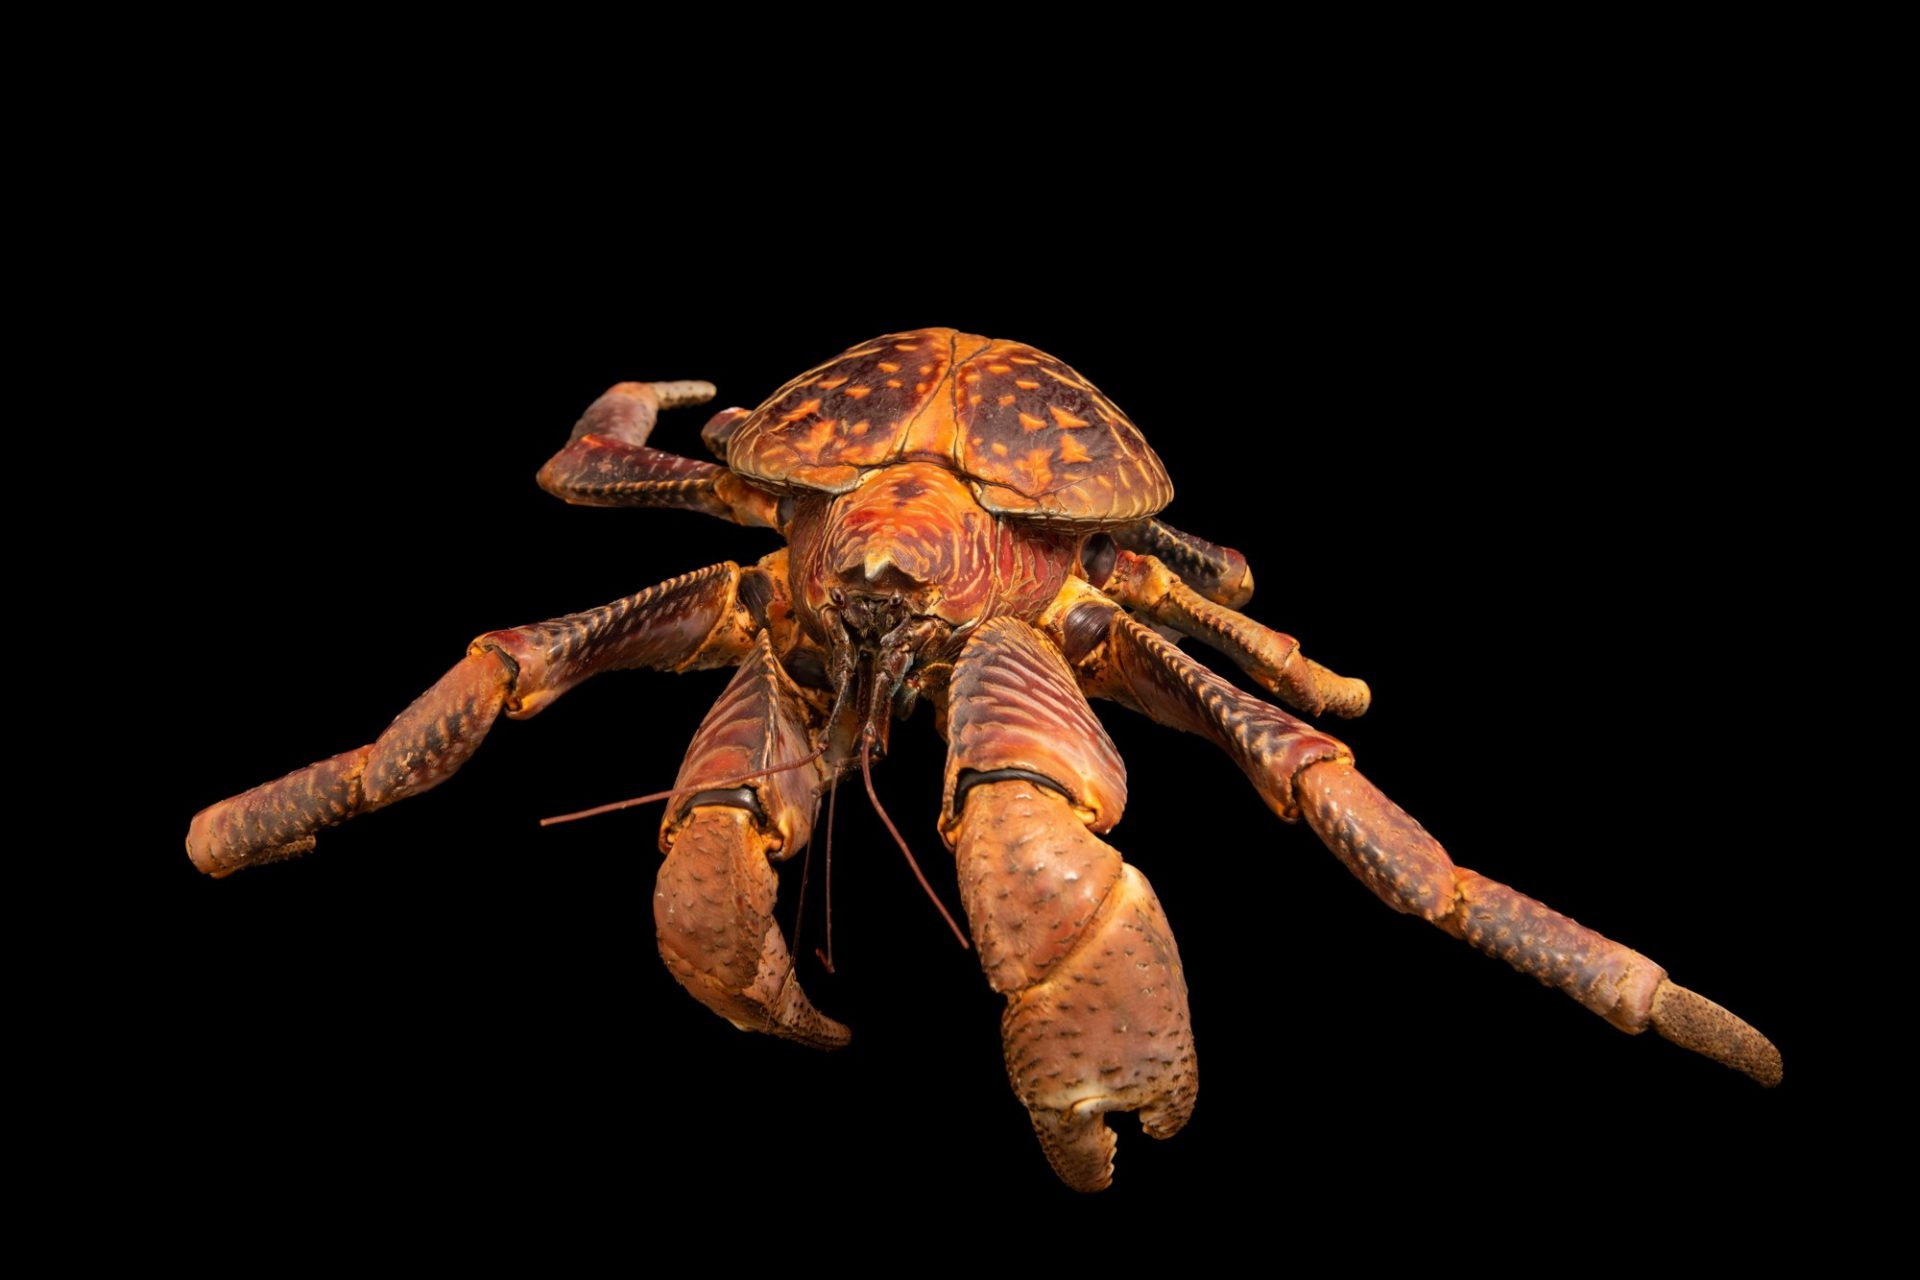 Photo: A coconut crab (Birgus latro) from Sorong, West Papua, Indonesia.